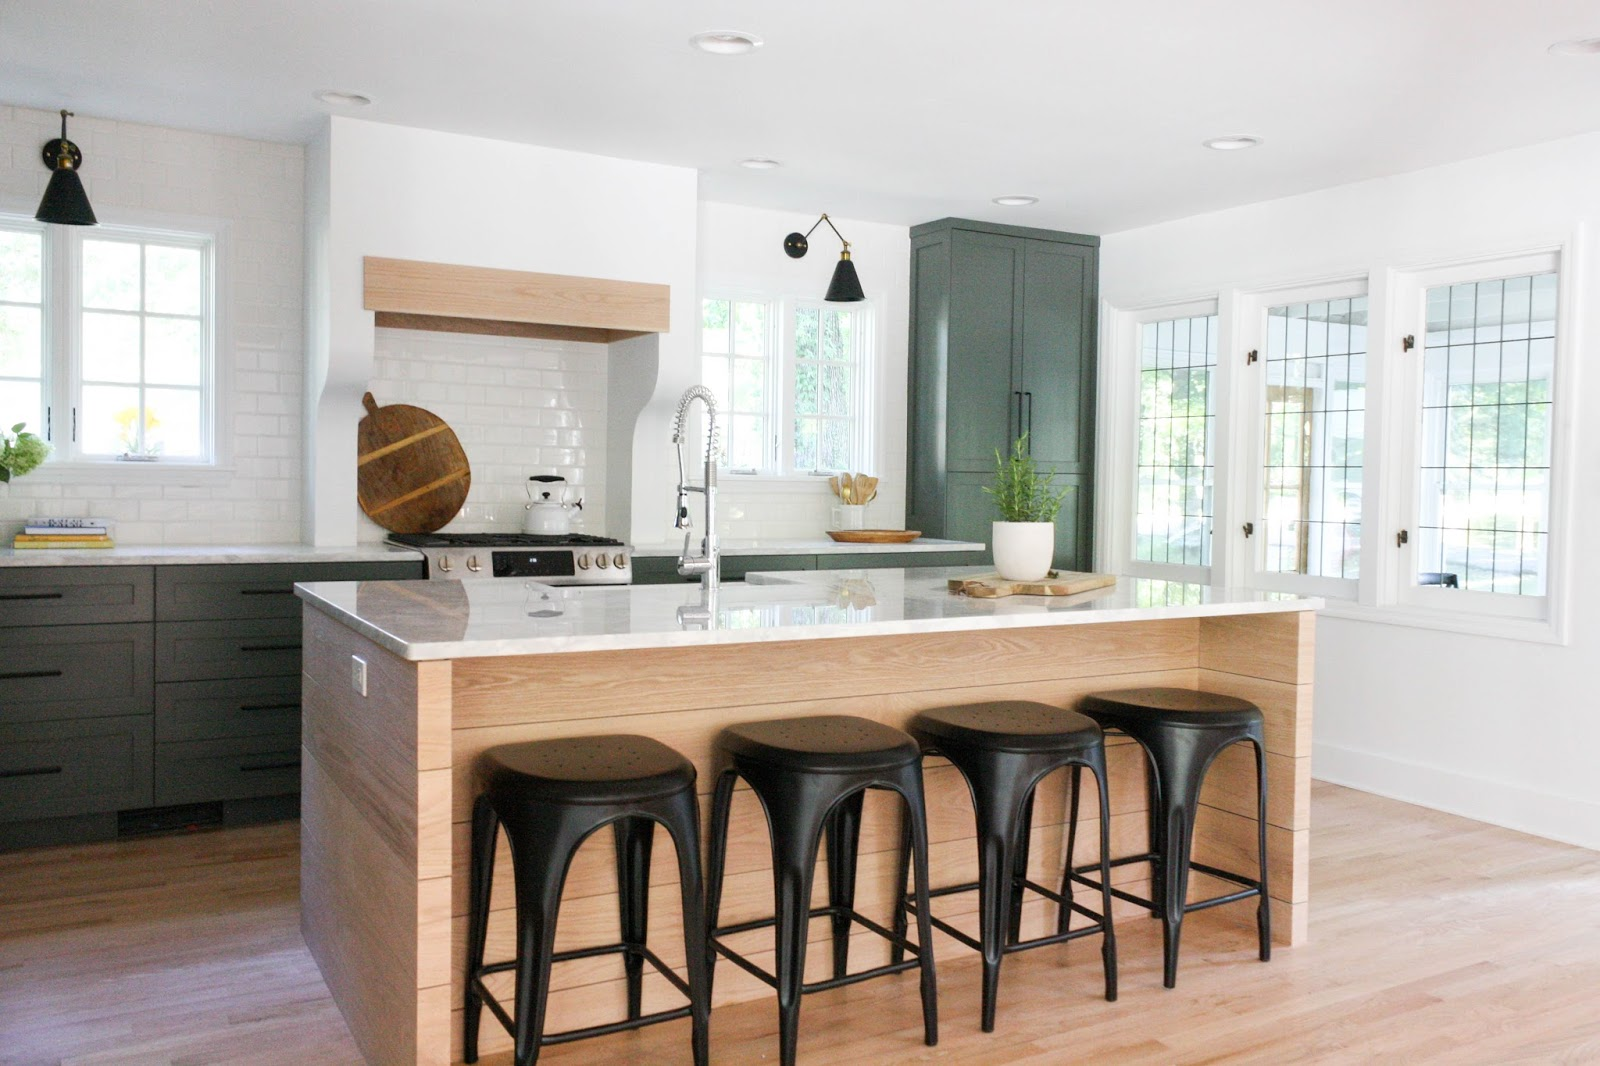 The Paint Color Used On Cabinets Is Sherwin Williams Pewter Green Library Sconces Are From Amazon Bar Stools Restoration Hardware